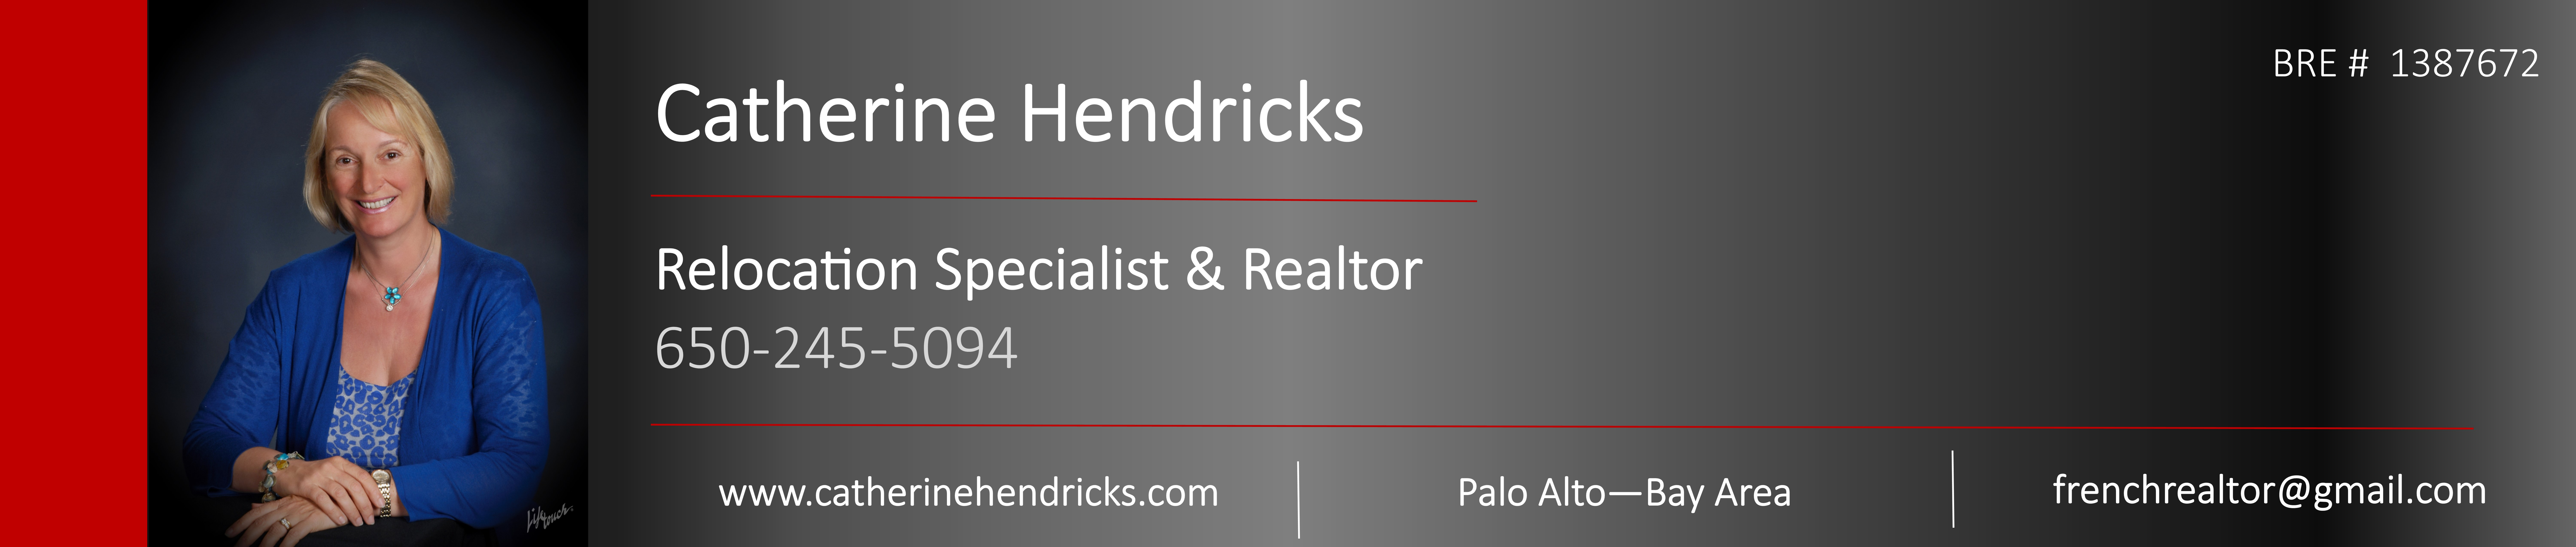 Catherine Hendricks French Realtor SF Bay